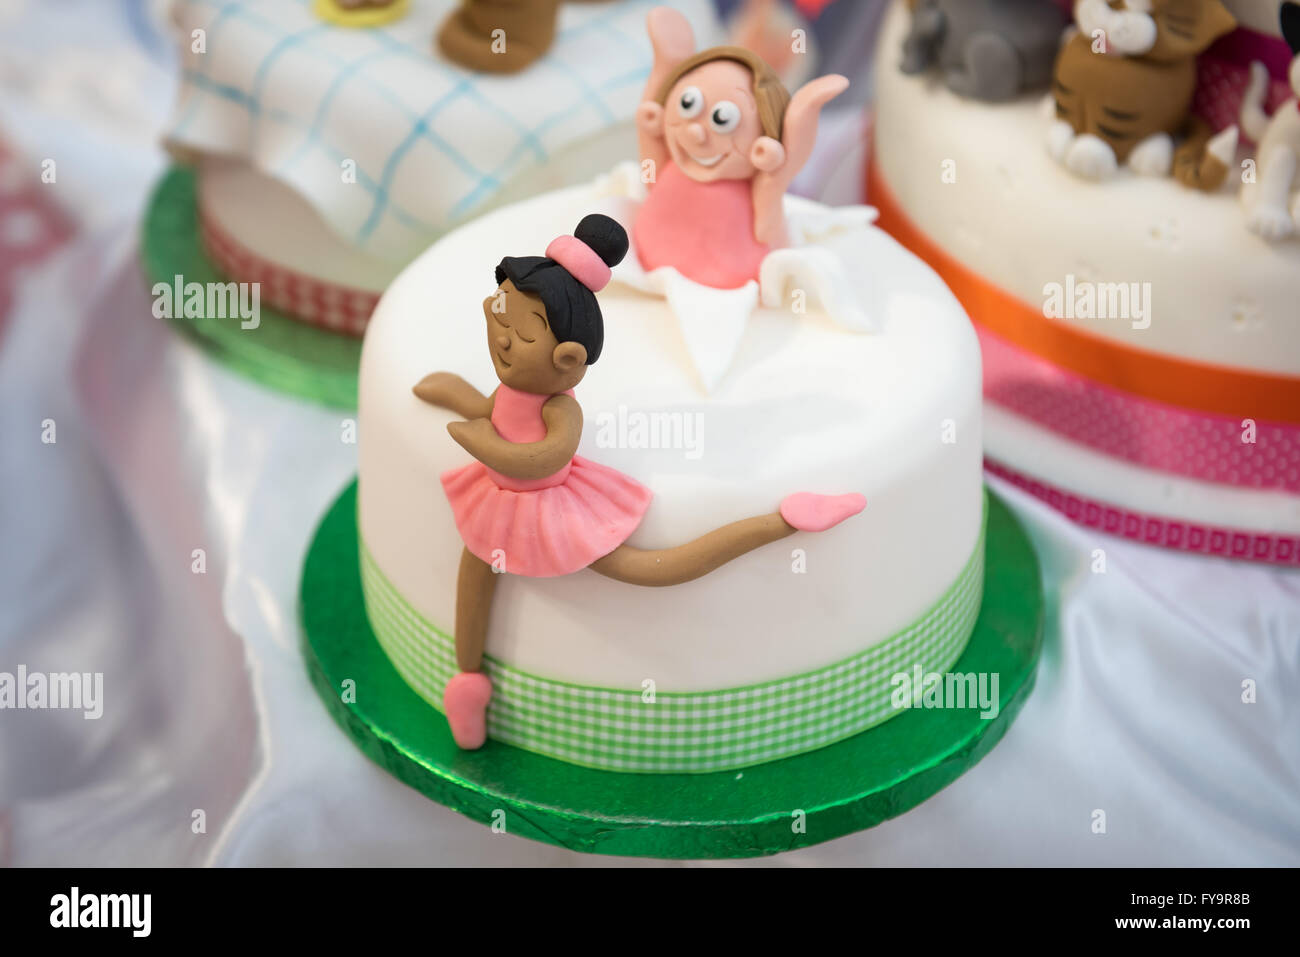 Cake Decorating Stock Images : Ballerina ballet dancer birthday cake at Cake ...